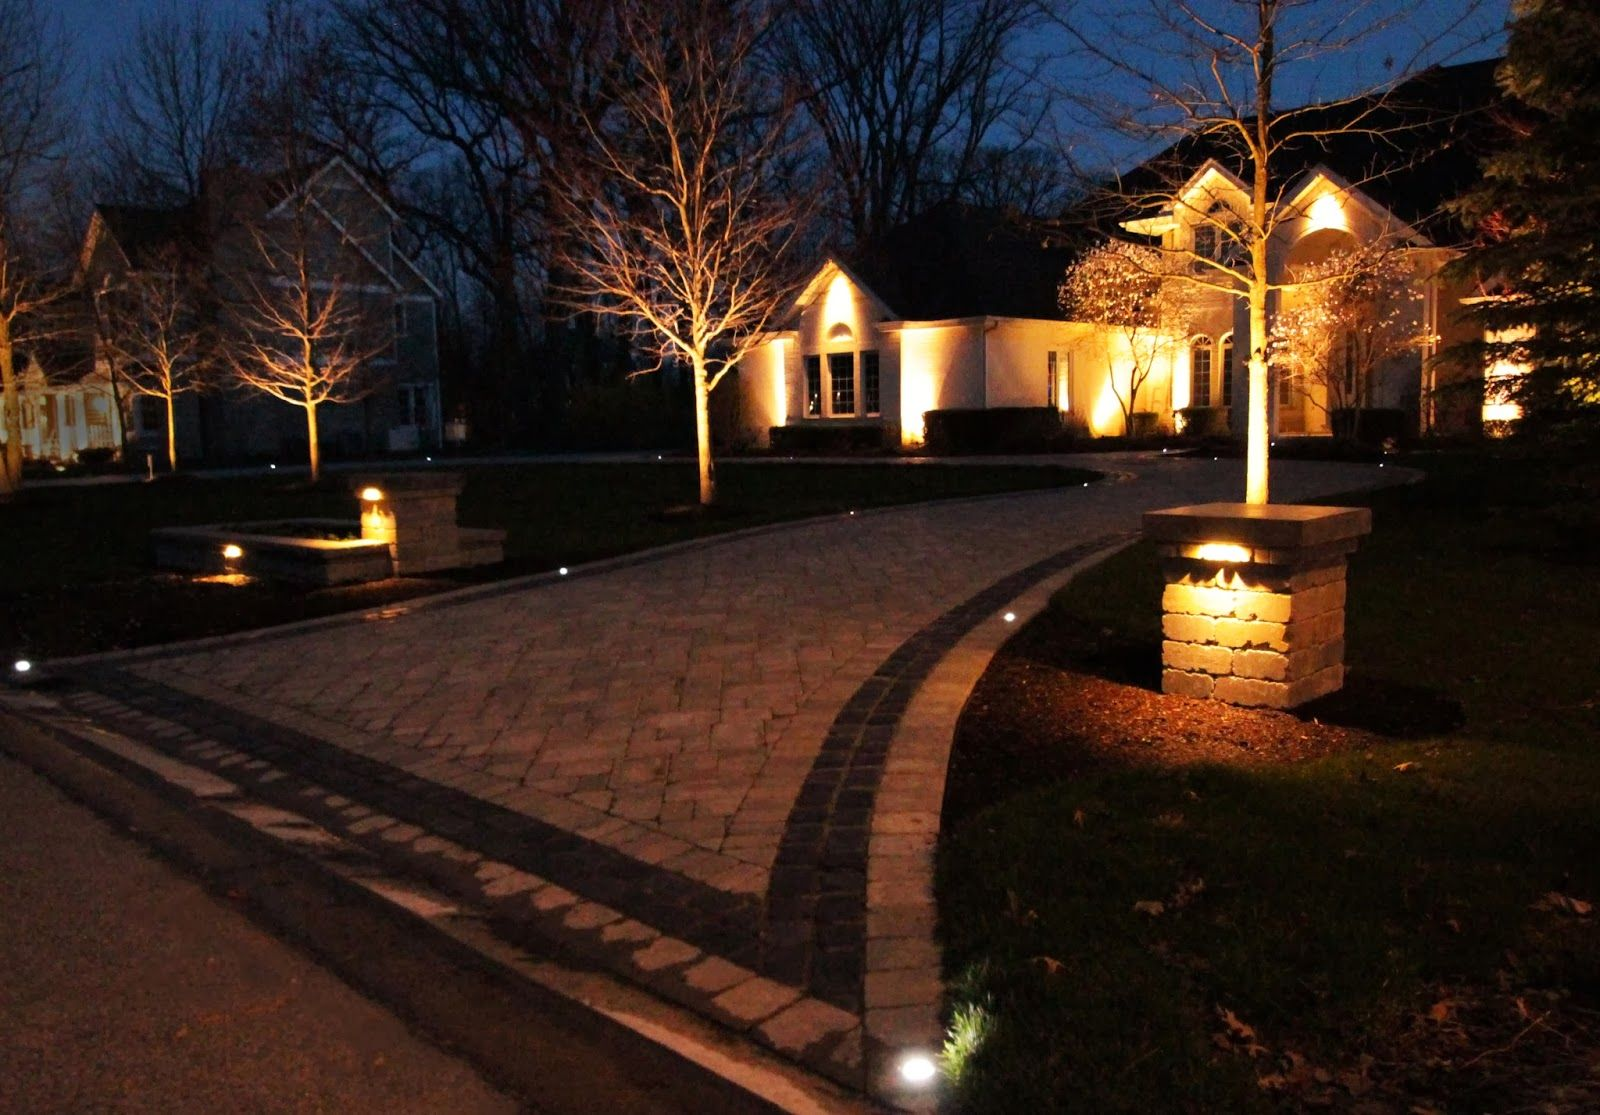 Landscape Lighting In 2020 Driveway Lighting Led Landscape Lighting Volt Landscape Lighting